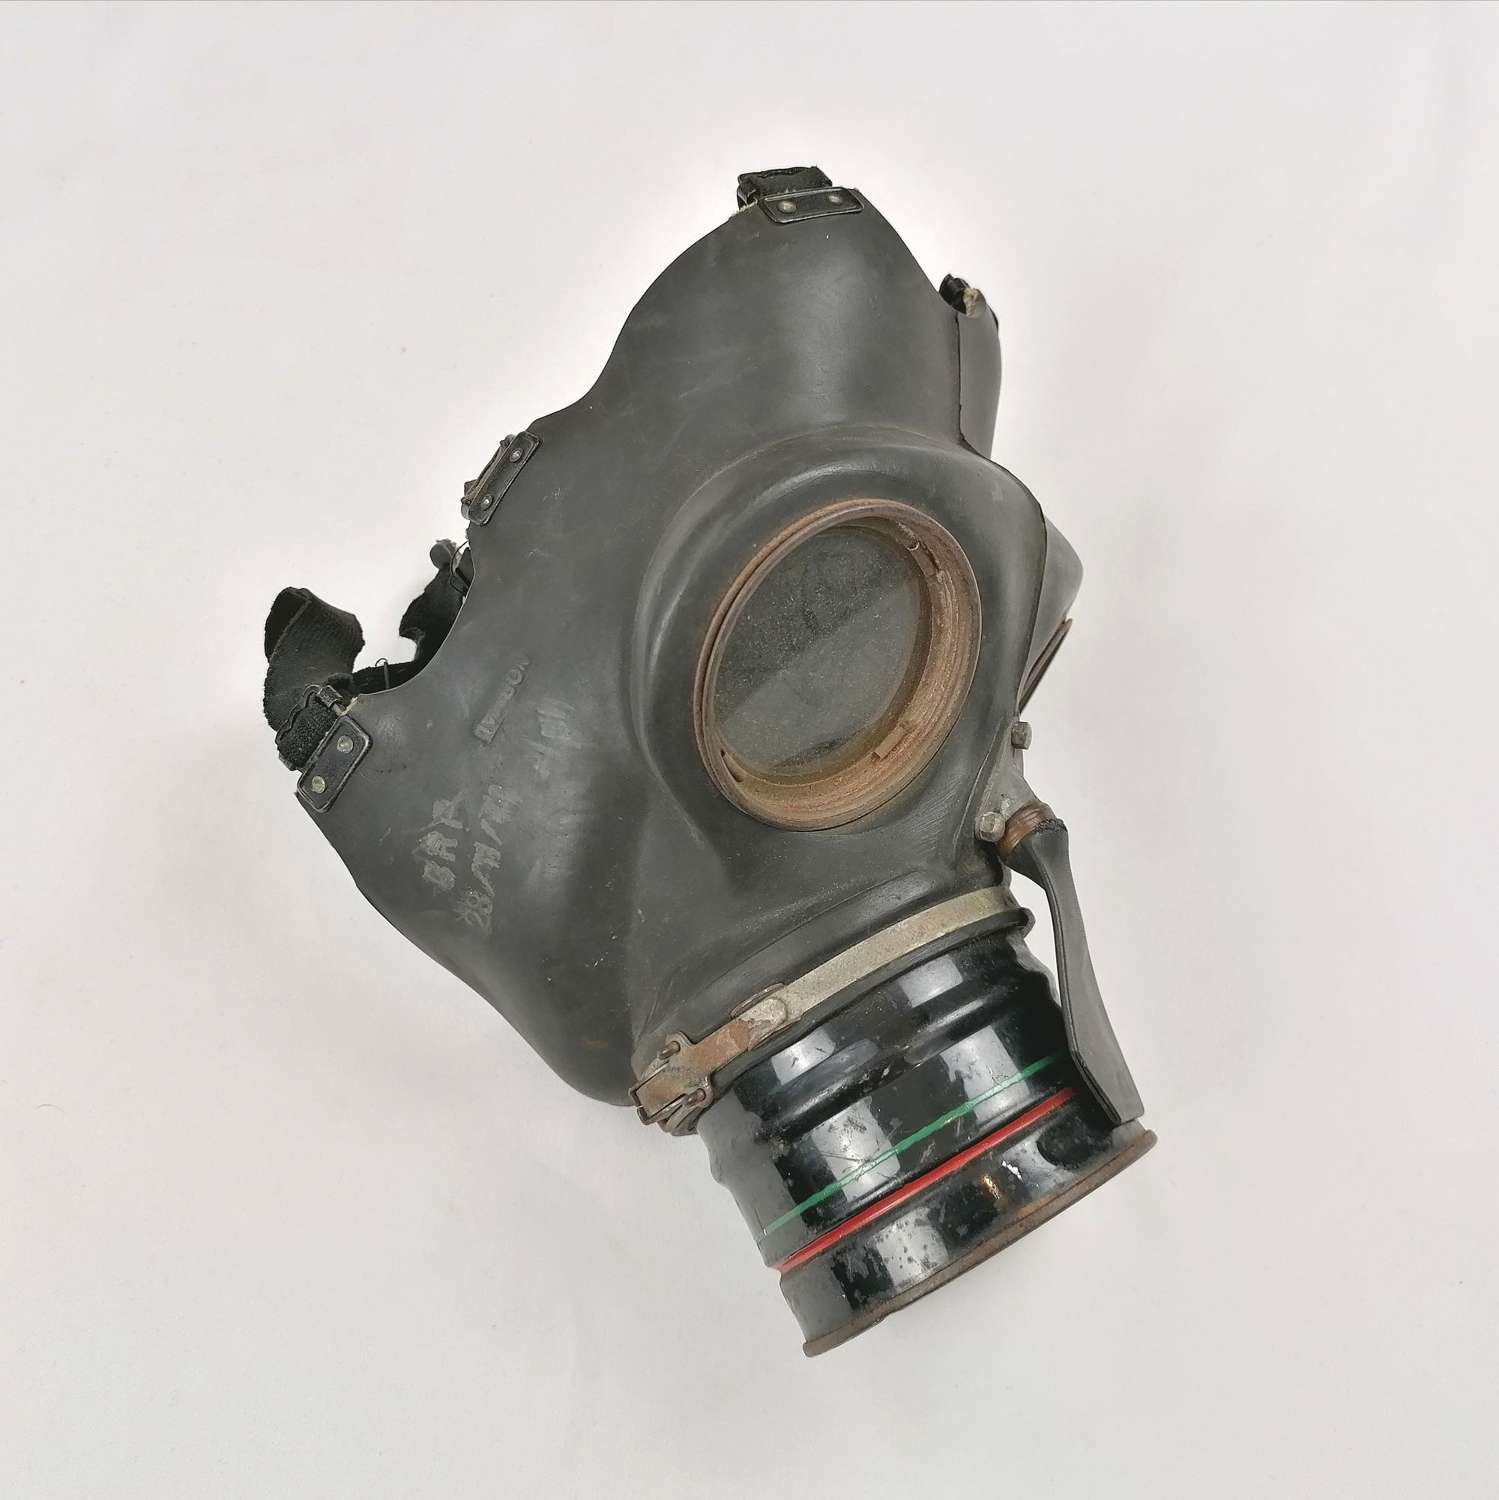 1940/41 Civilian Duty Romac Civil Defense Respirator